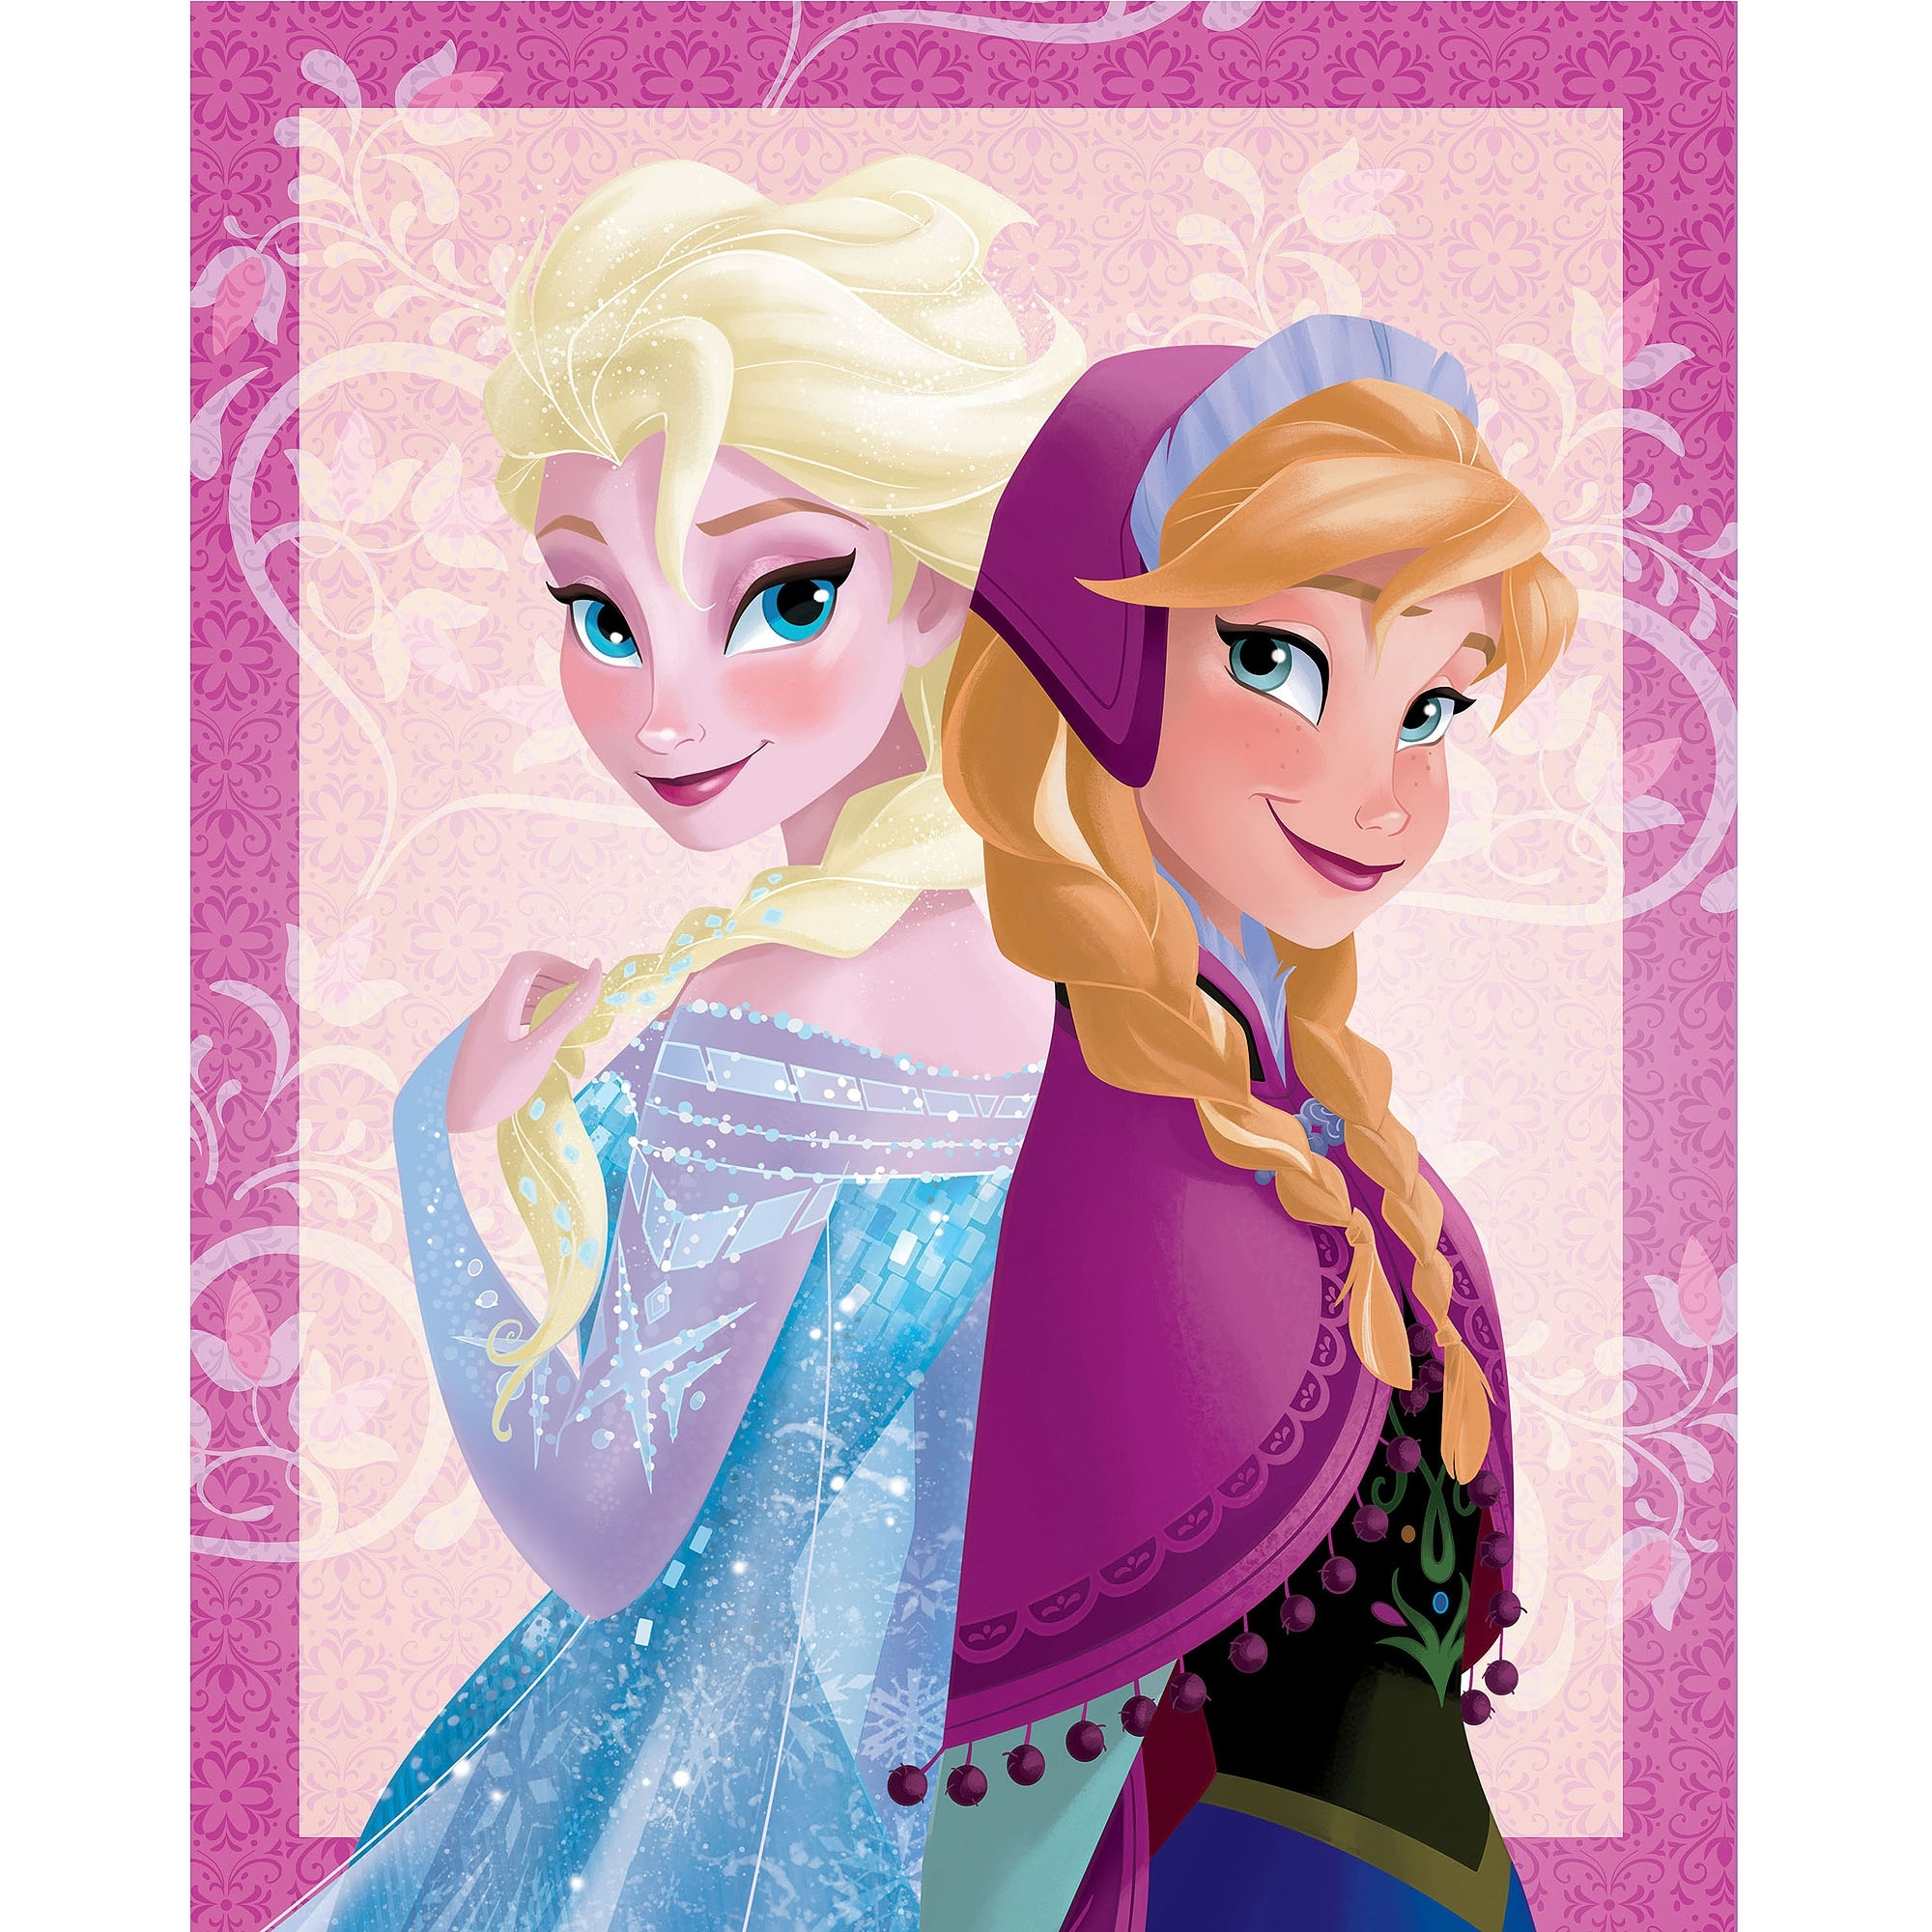 "Disney Frozen Elsa And Anna Canvas Wall Art, 20"" X 30"" – Walmart With Regard To Best And Newest Elsa Canvas Wall Art (View 2 of 15)"